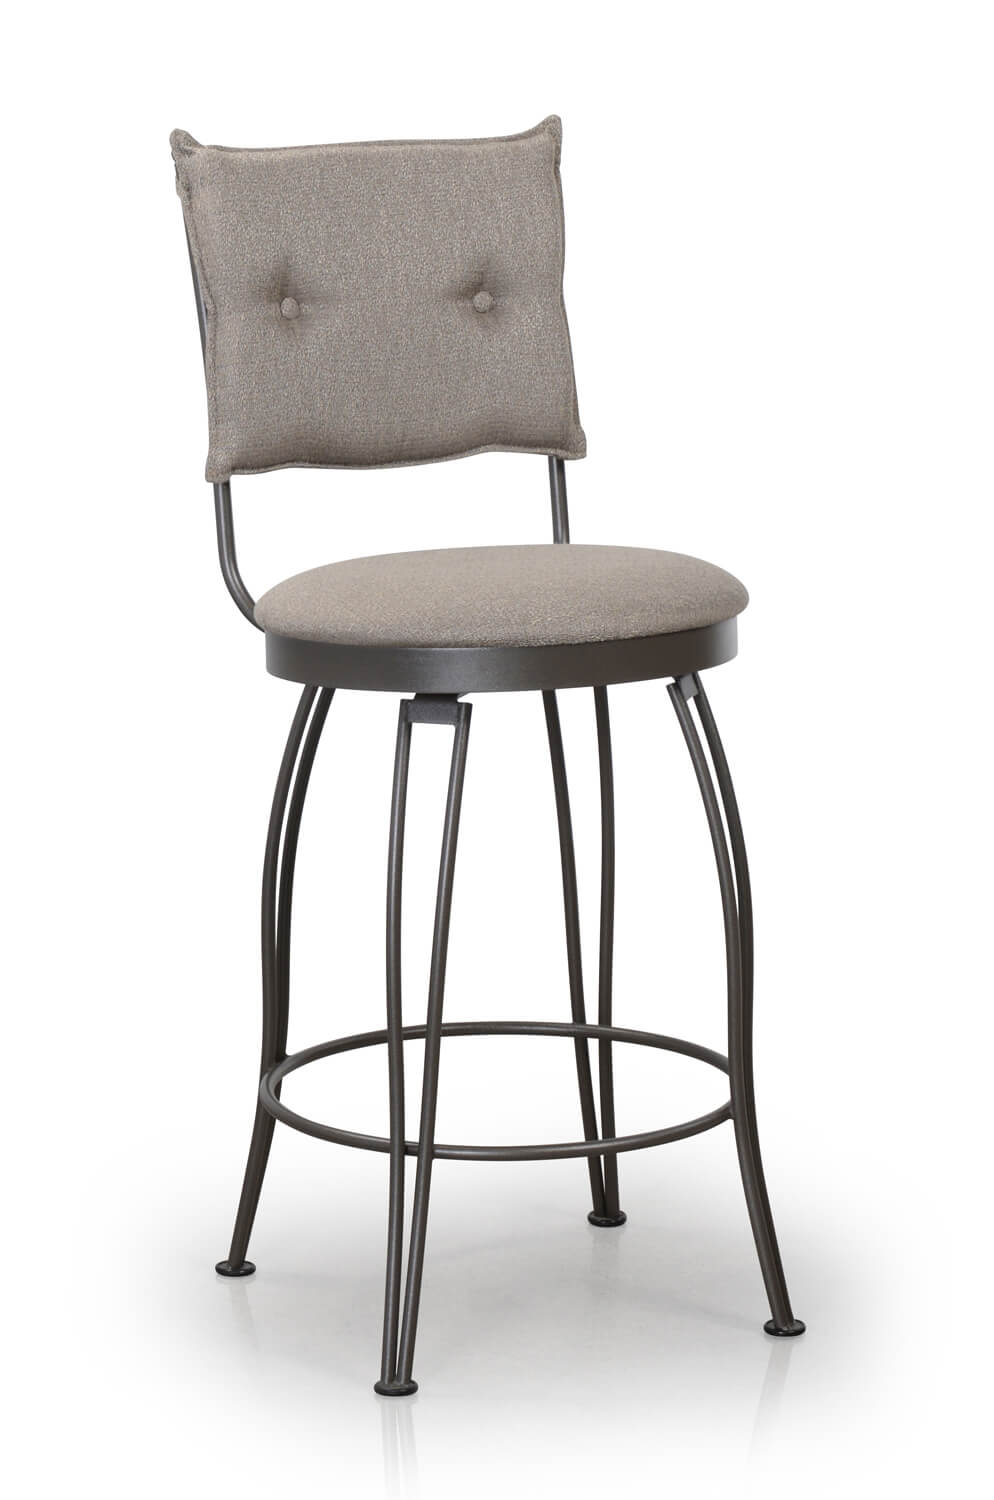 Buy Trica S Bill Swivel Button Tufted Back Bar Stool